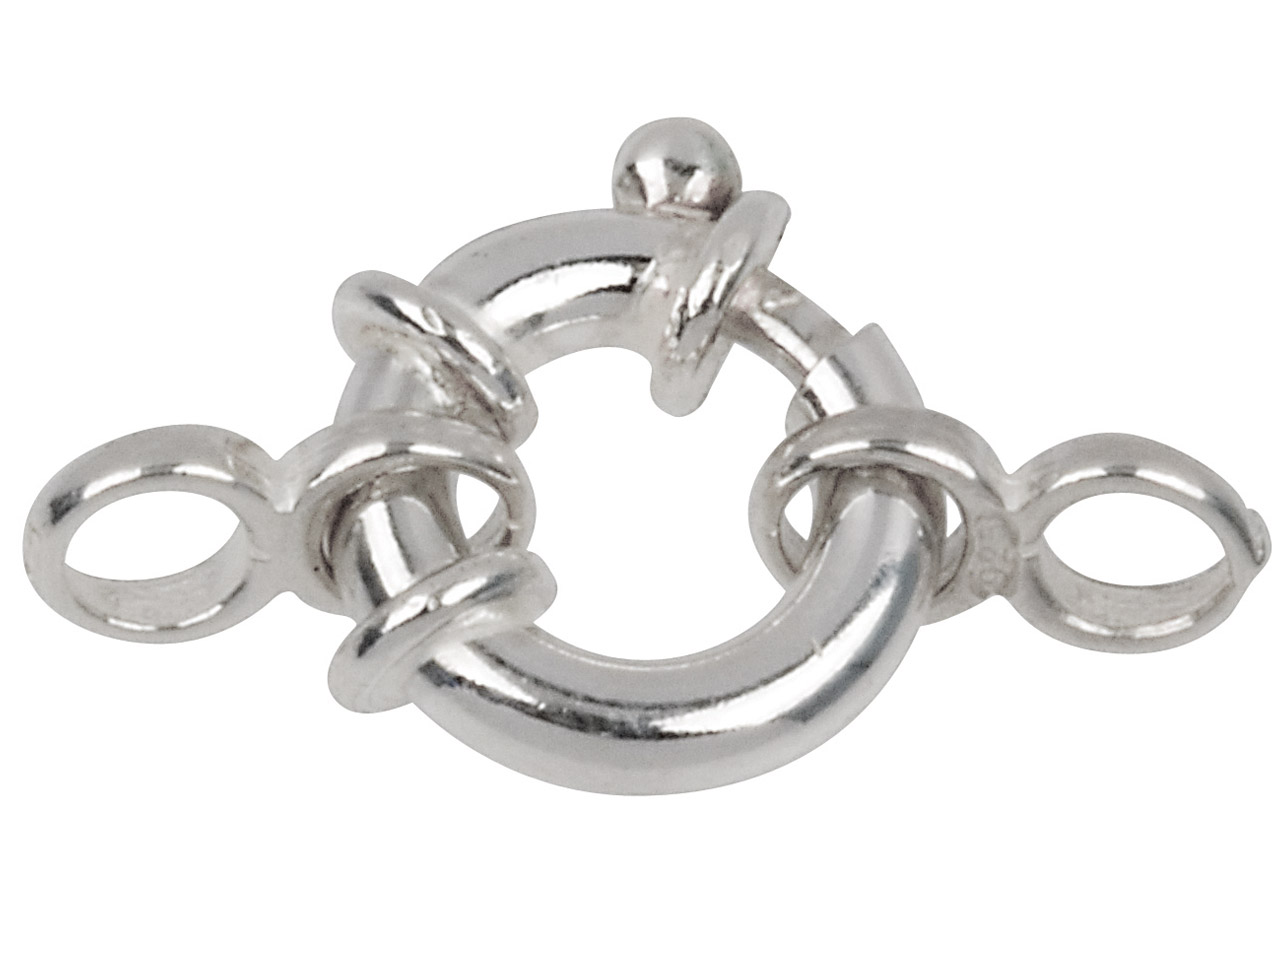 Sterling Silver Jumbo Bolt Ring     13mm, With 2 Figure Of 8 Jump Rings